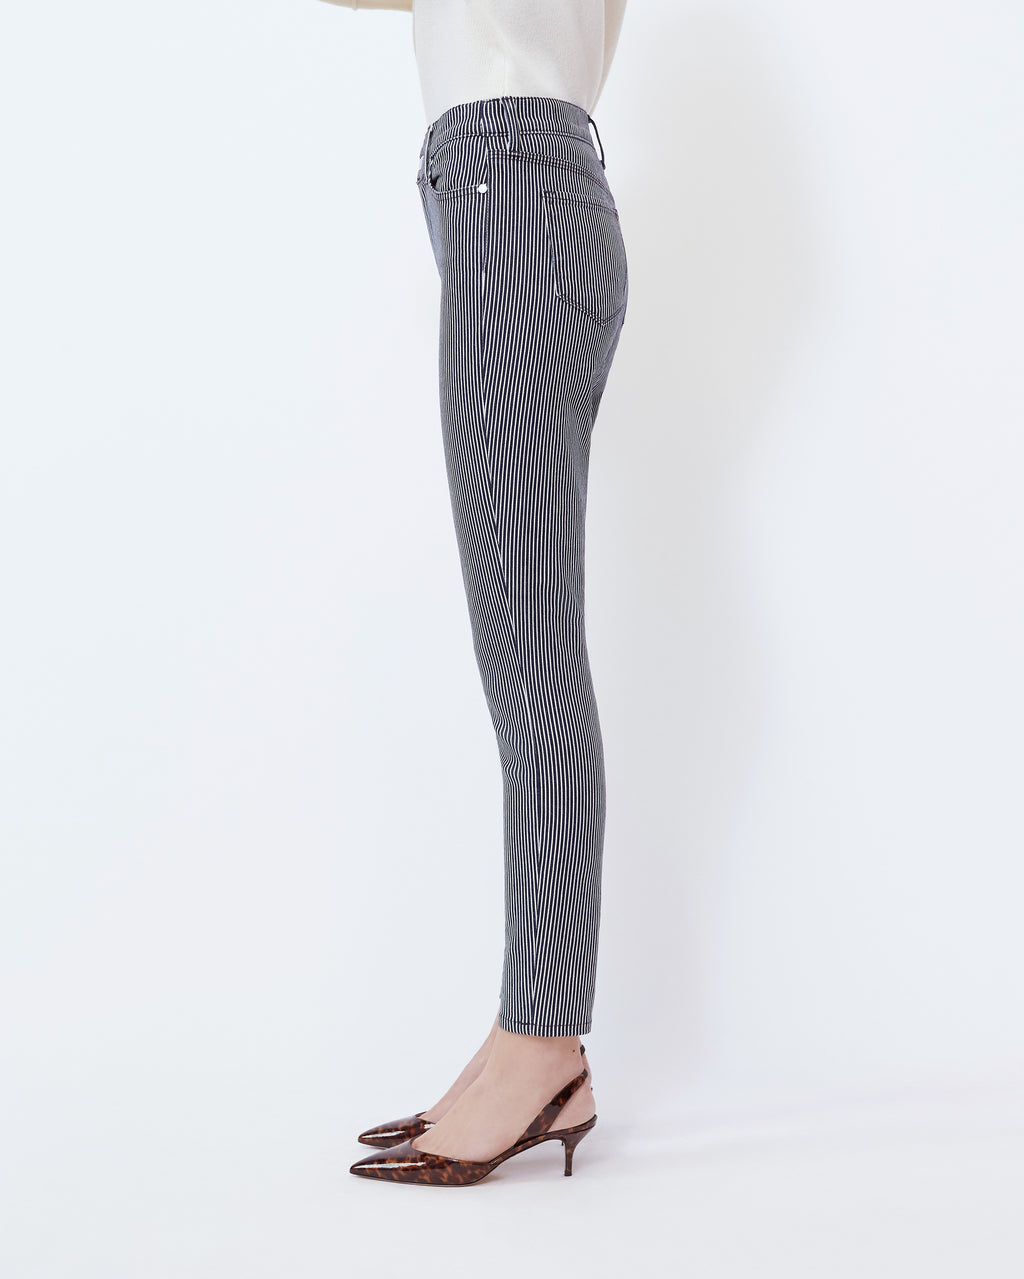 The Ultra High Rise Skinny Jean In Navy/Optic White